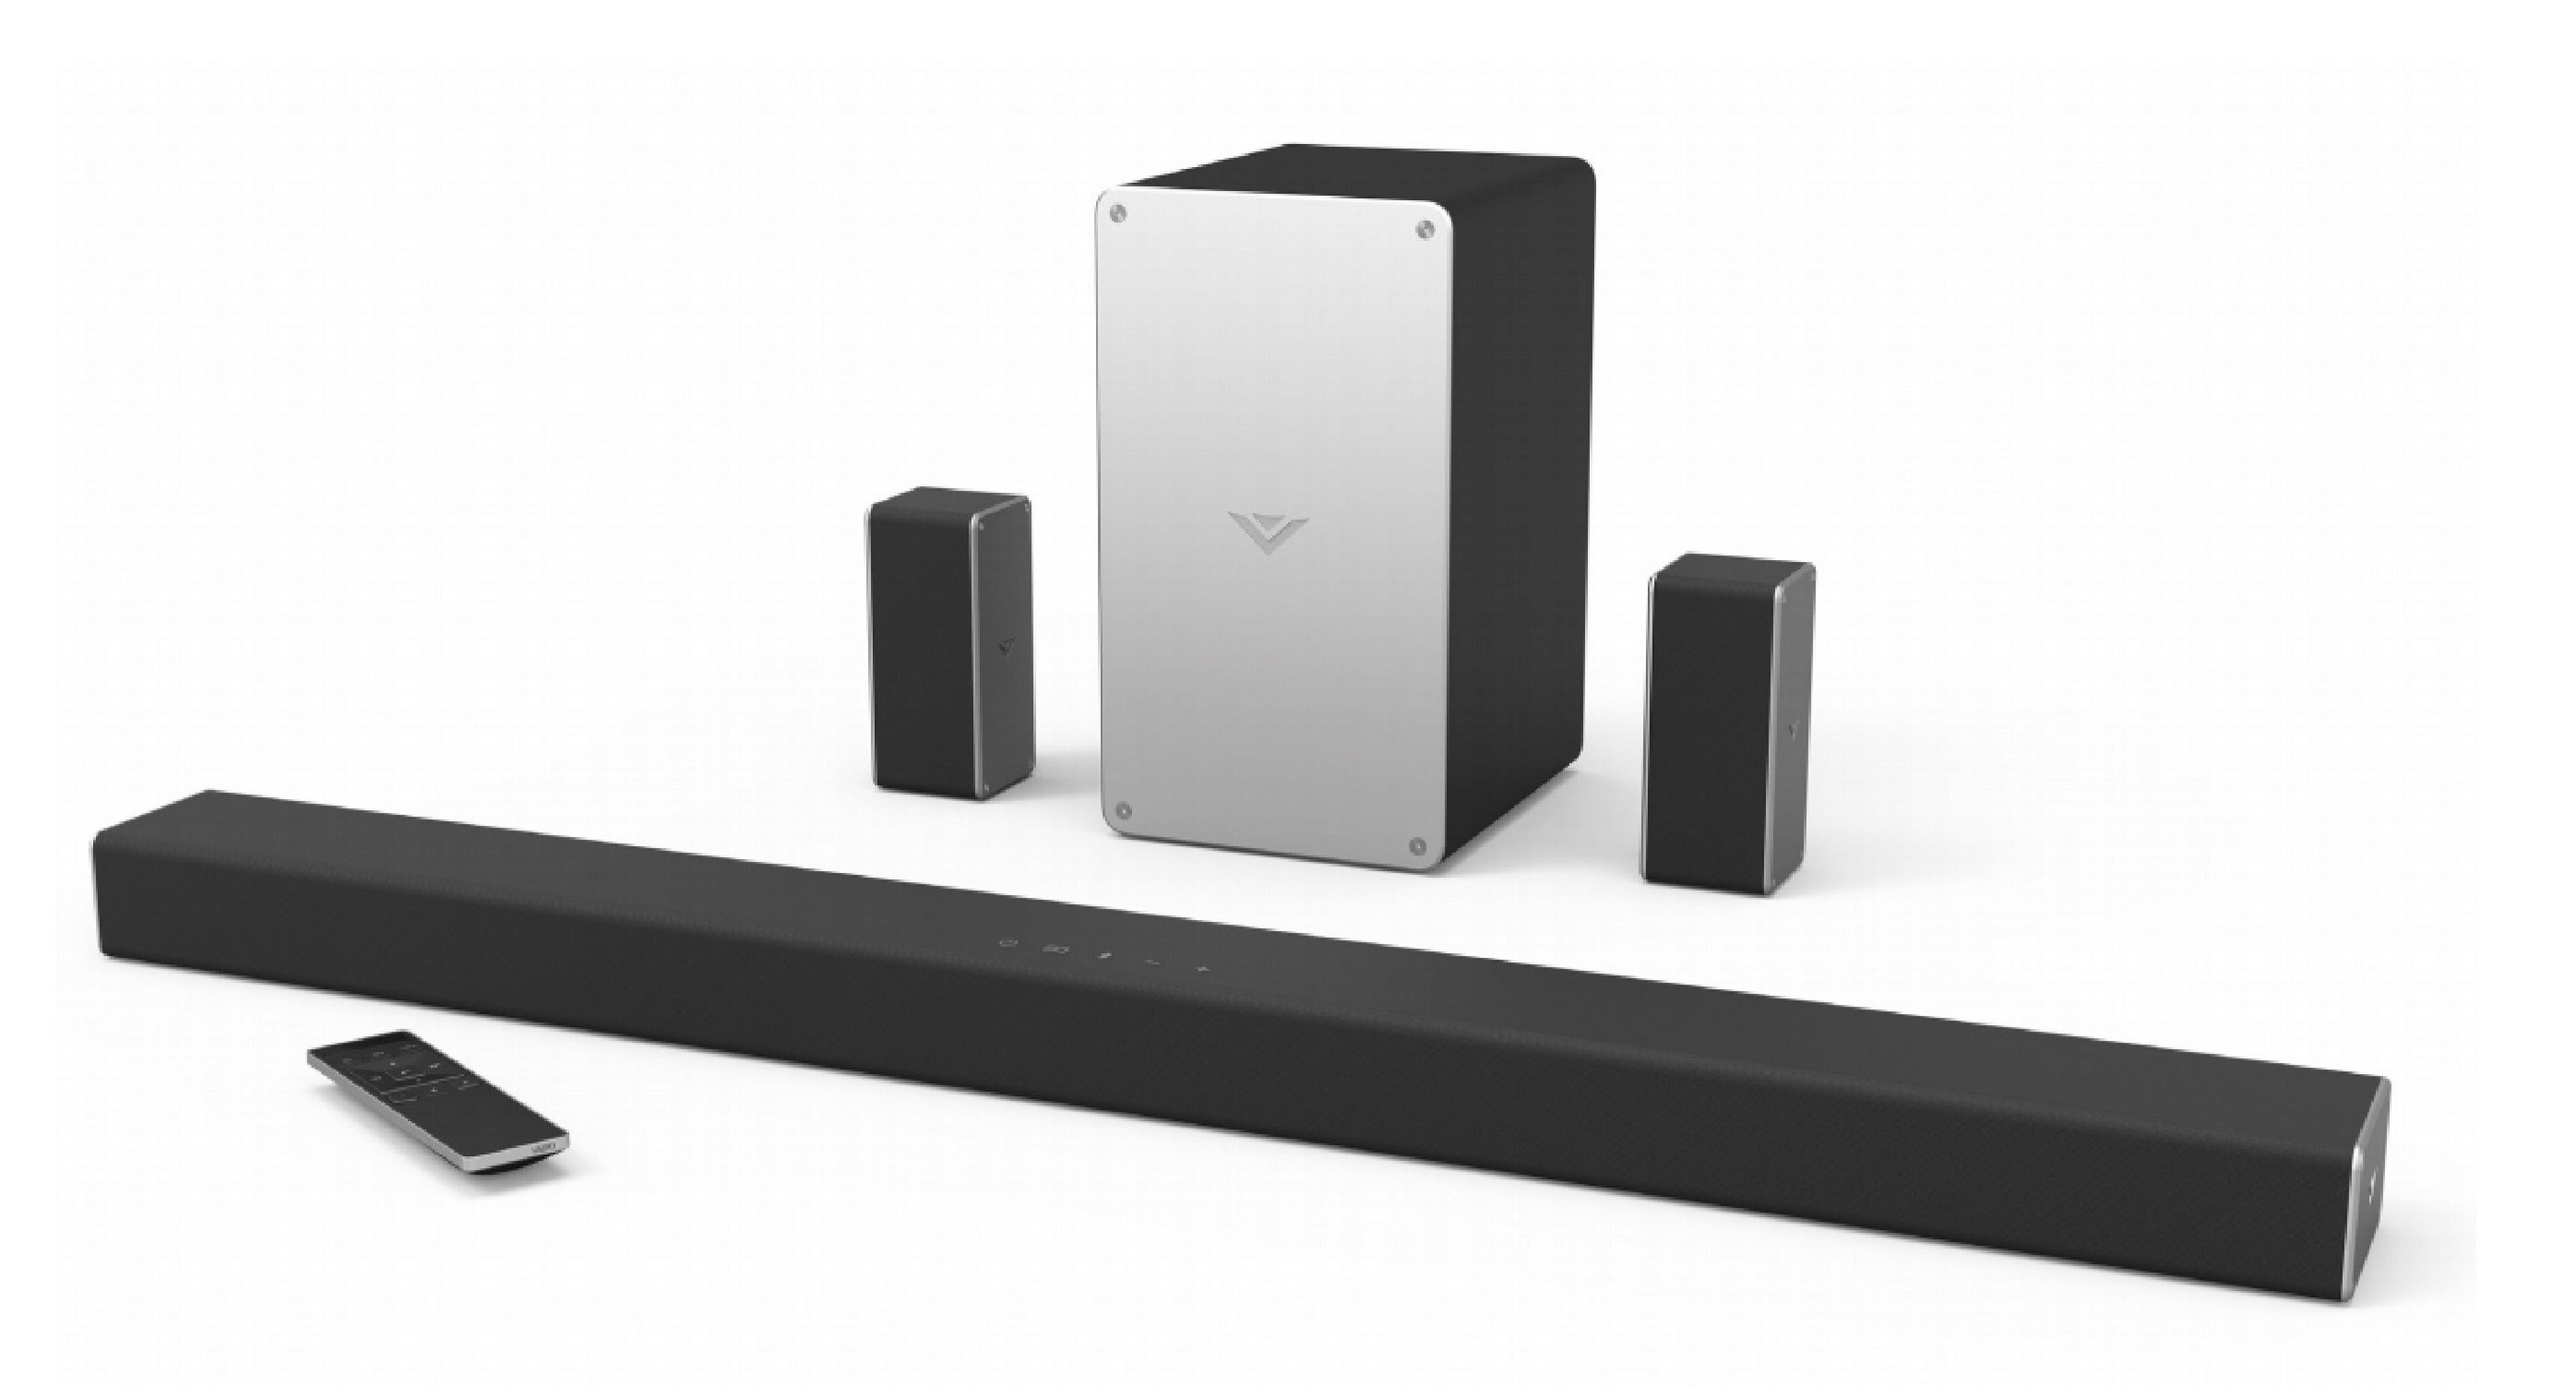 Vizio Smartcast Sound Bar Model Sb3651 E6 Review The High Tech Phone Lines Used For Setting Up Whole House Speaker System Feature Set Comes With A Few Sonic Tradeoffs Techhive